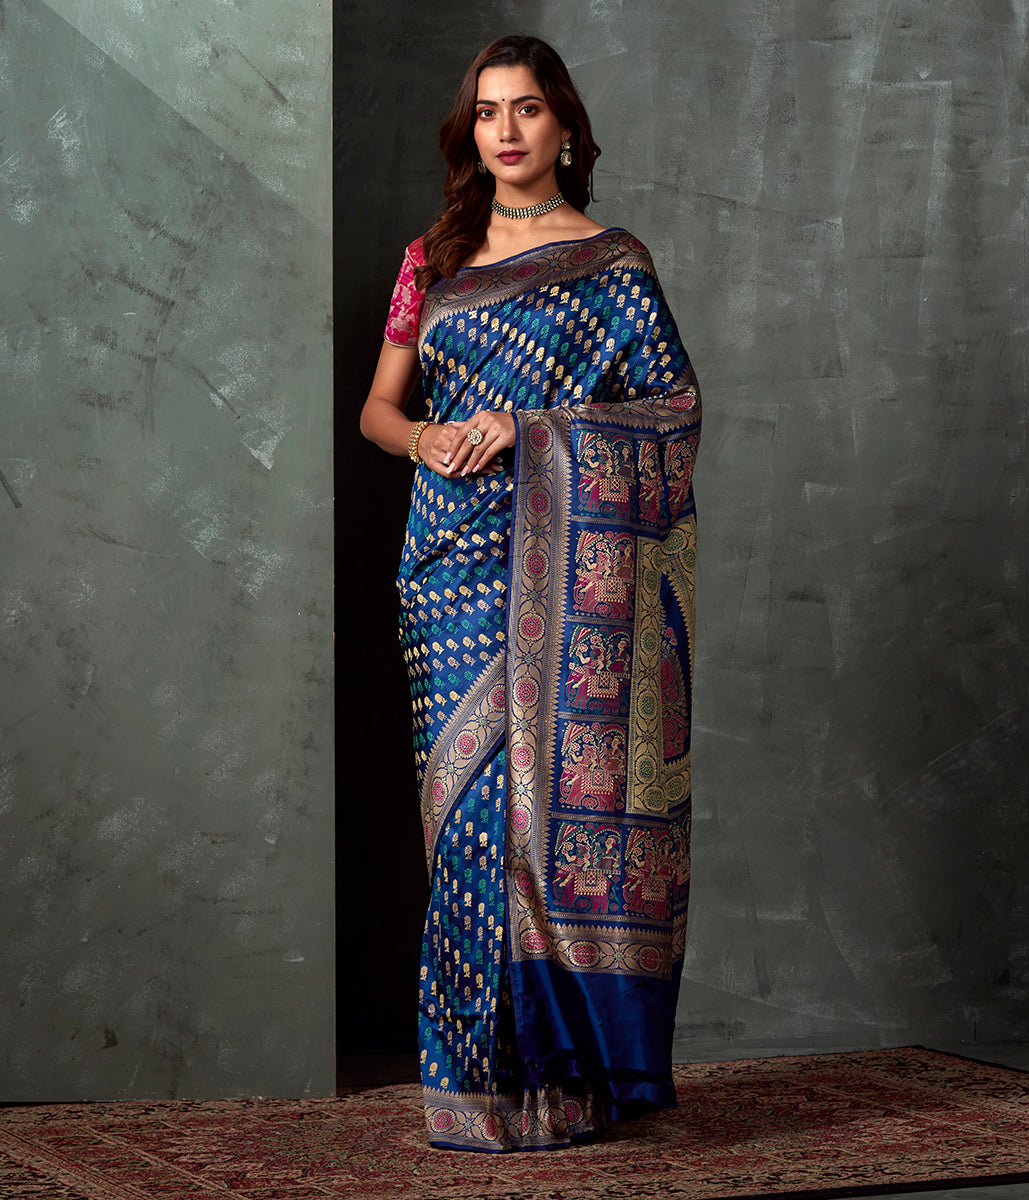 Handwoven Banaras Baluchari in Blue with Grand Elephant Pallu